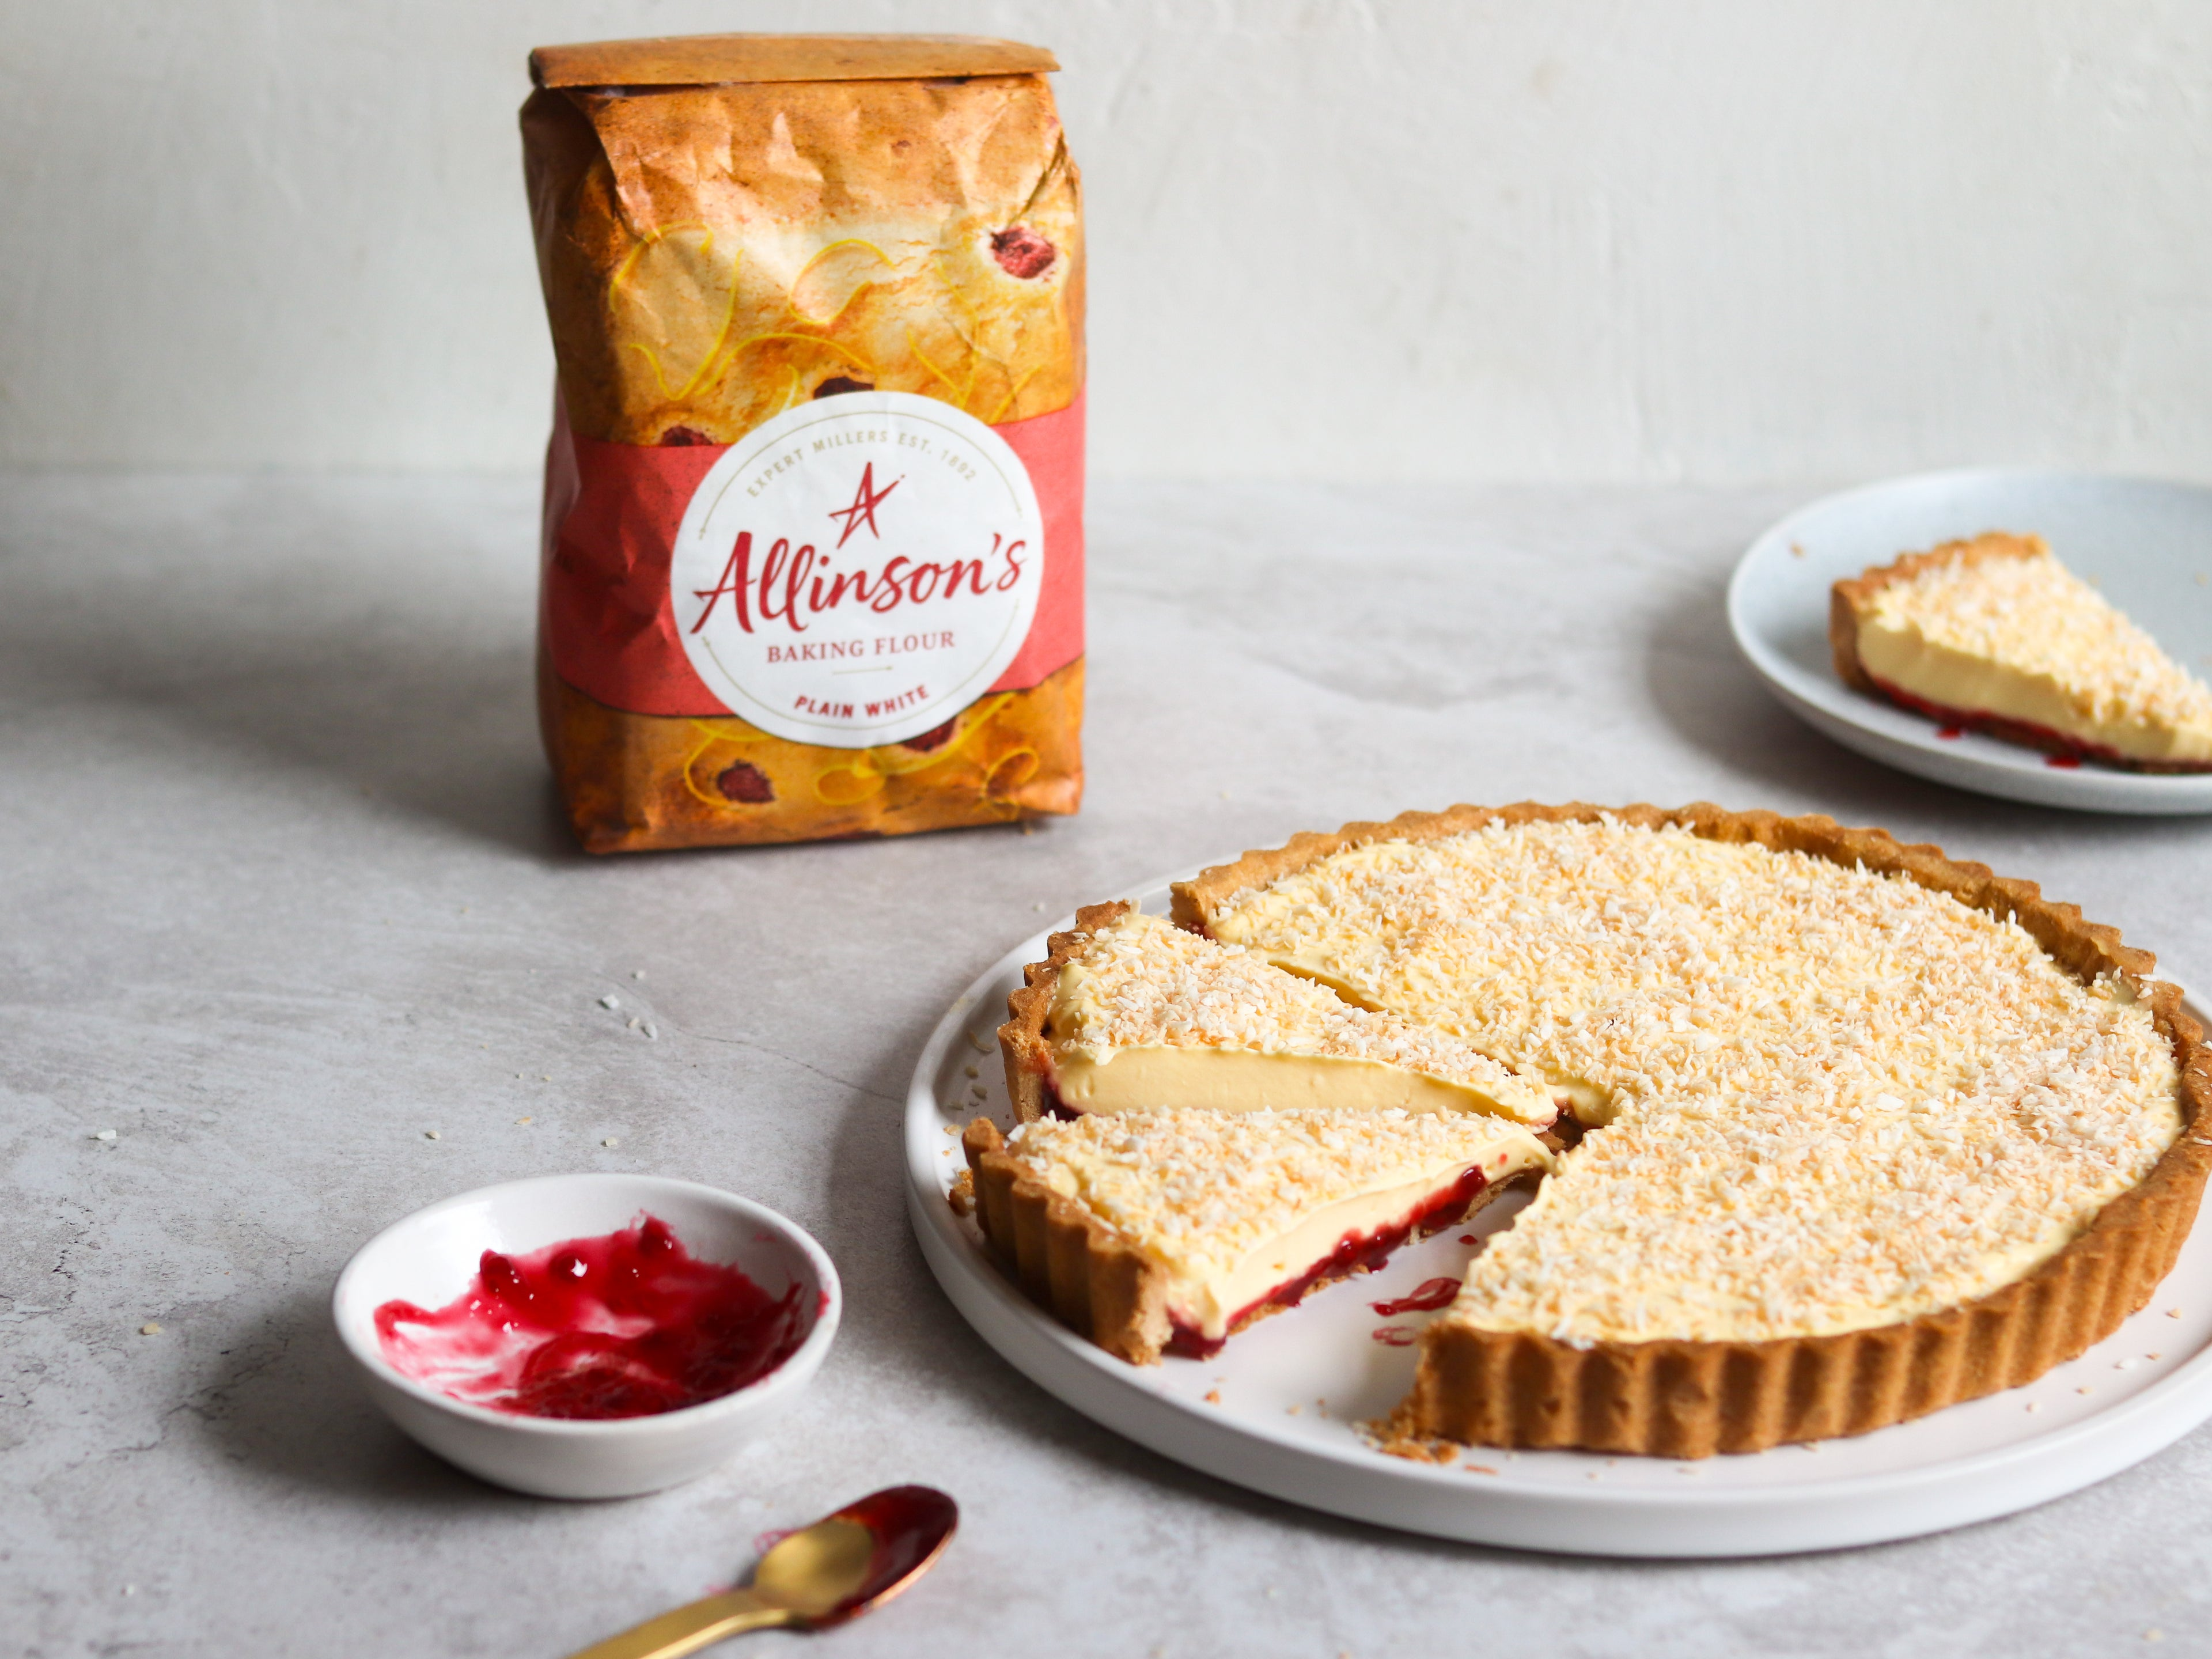 Manchester Tart with slice cut out of it, next to a bowl of jam and a spoon. Bag of Allinson's Plain Flour in background